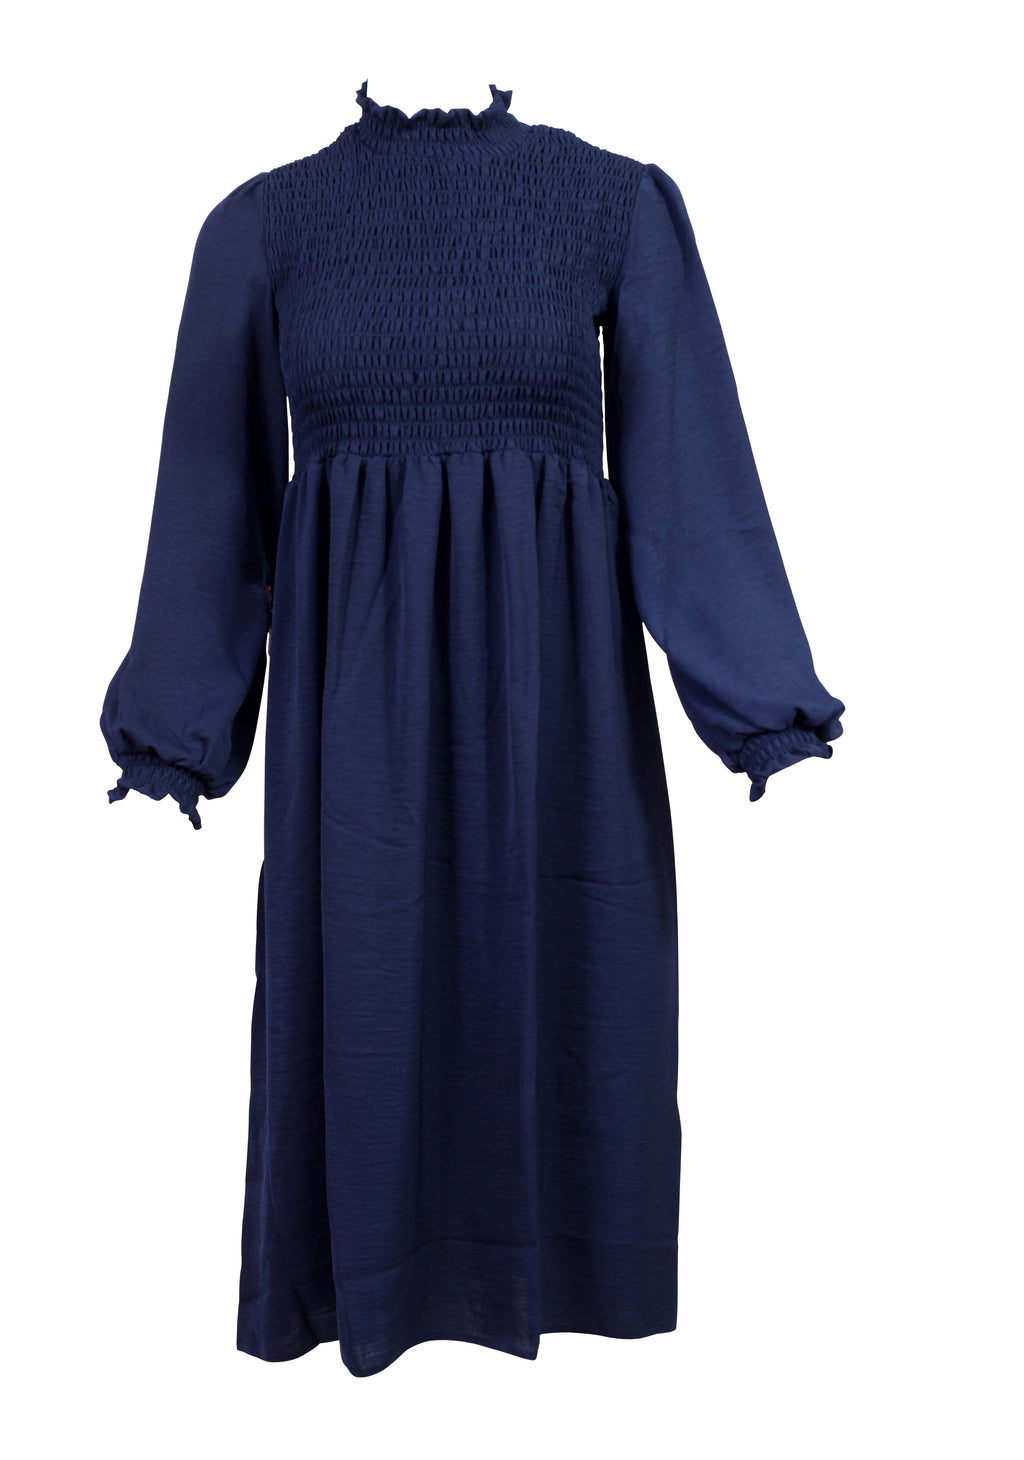 Front view of a navy shift dress with a ruffled bust